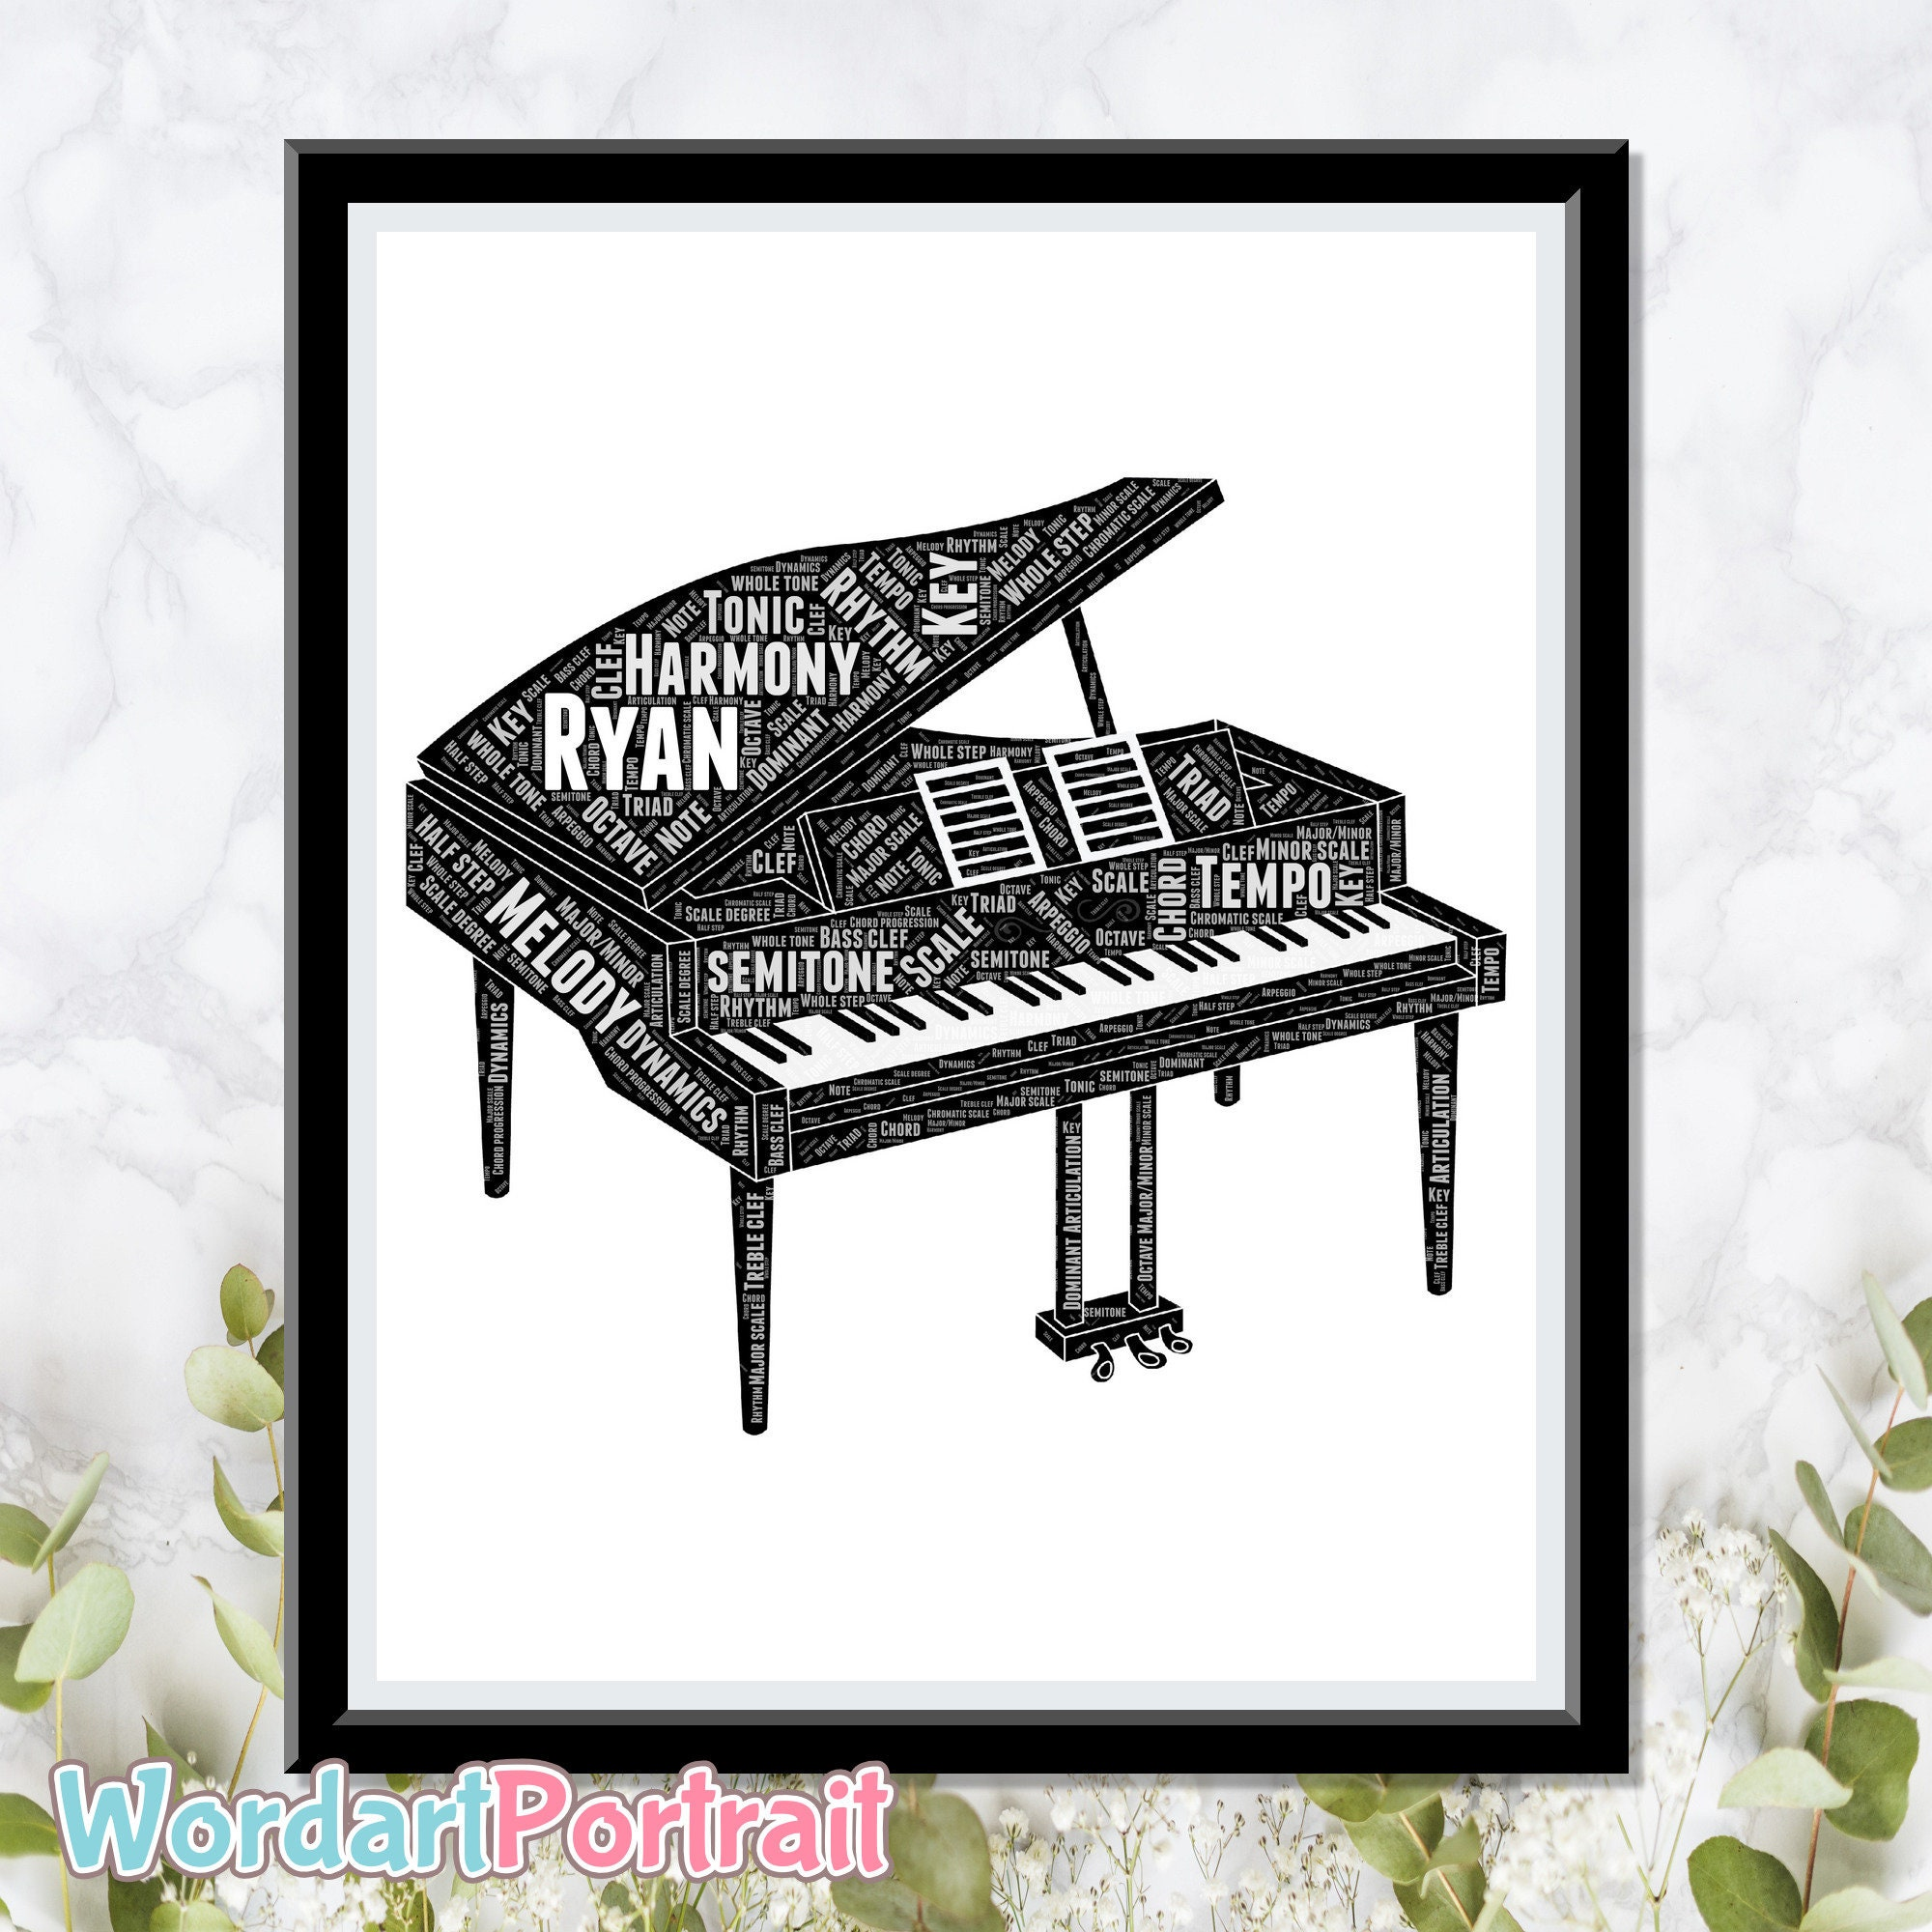 Personalized Grand Piano - Gift For Pianist - Piano Gift Word Art - Wall Room Decor Prints - Word Art Portrait - Custom Piano Print